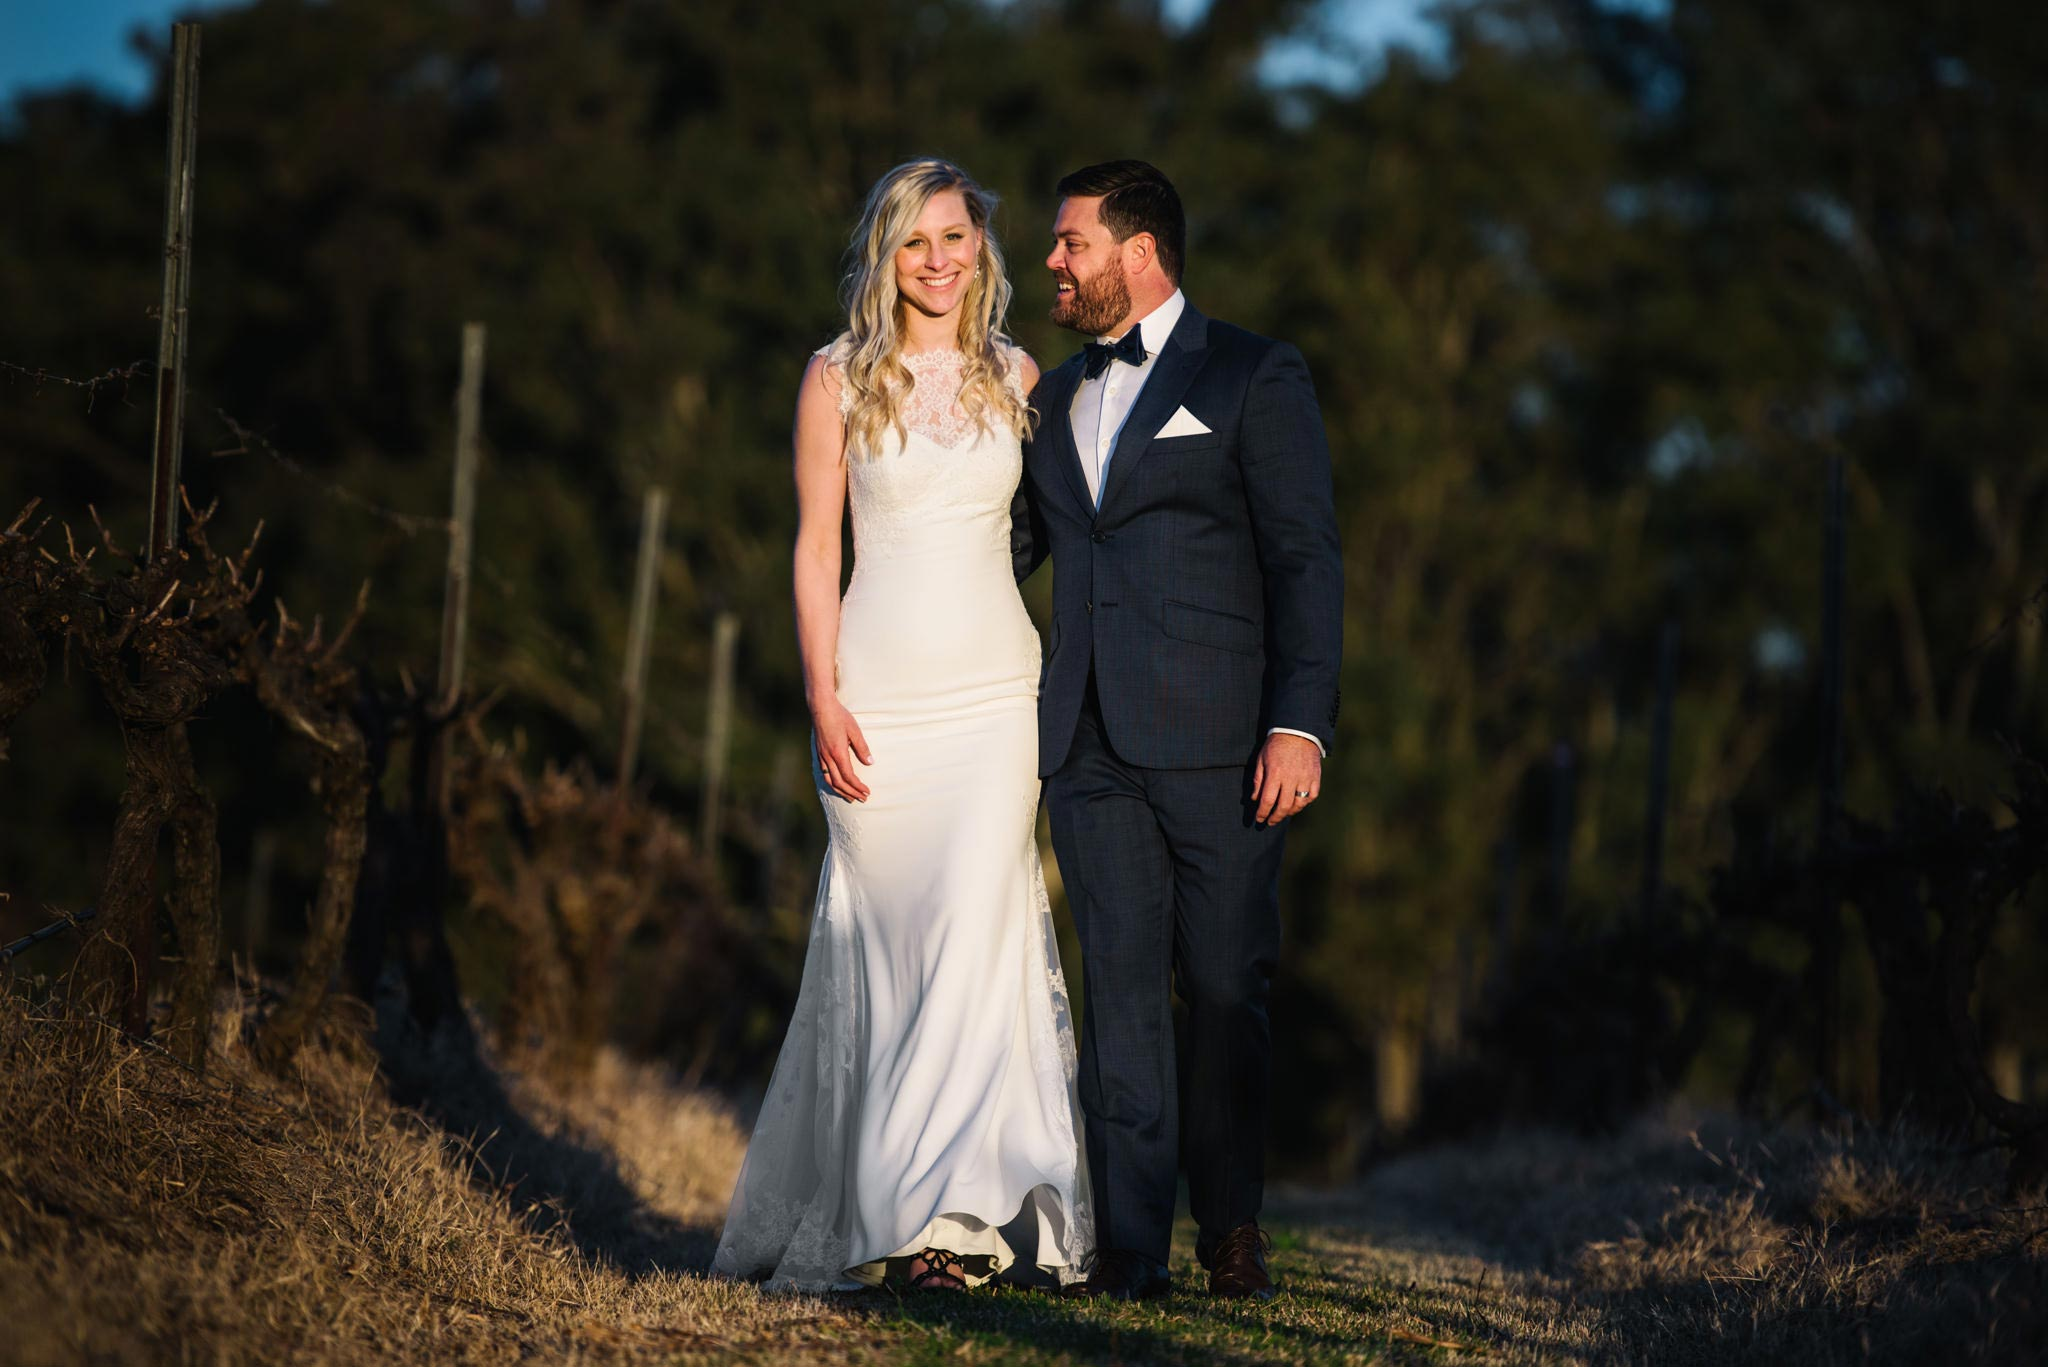 Newlyweds smiling and walking along country path